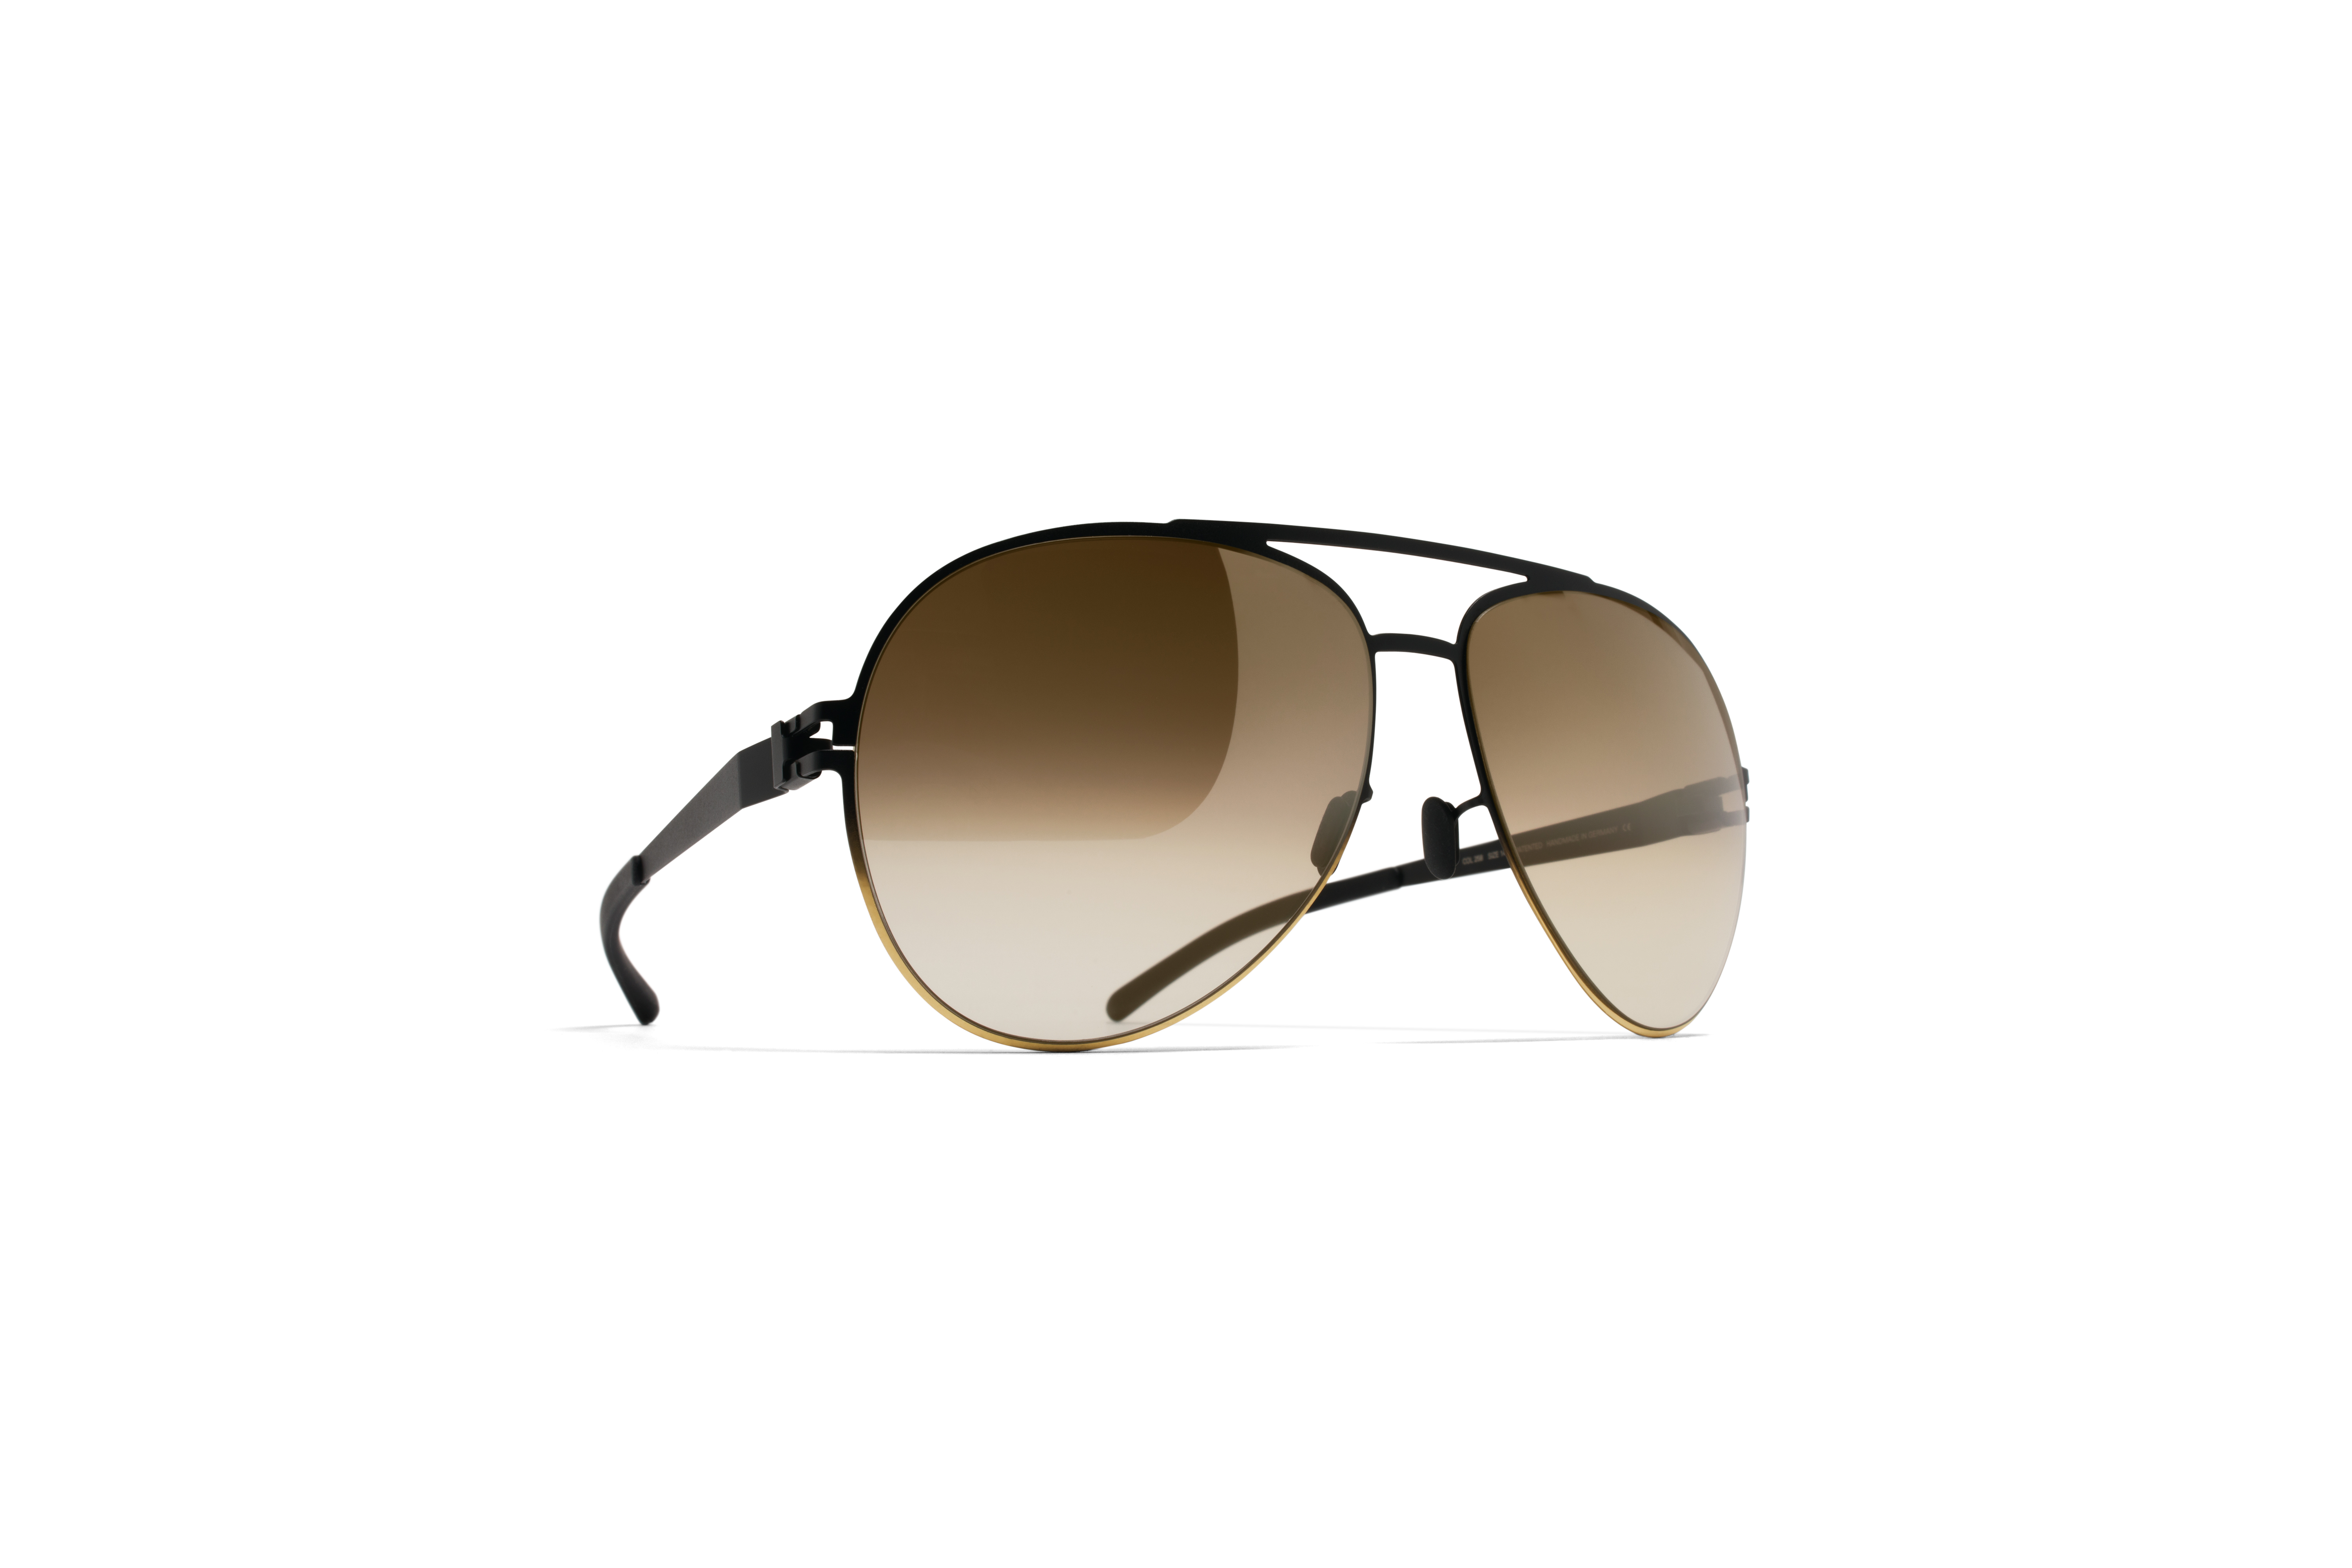 MYKITA Bw Sun Erwin F67 Black Gold Brown Gradient56fbf77e0f00b